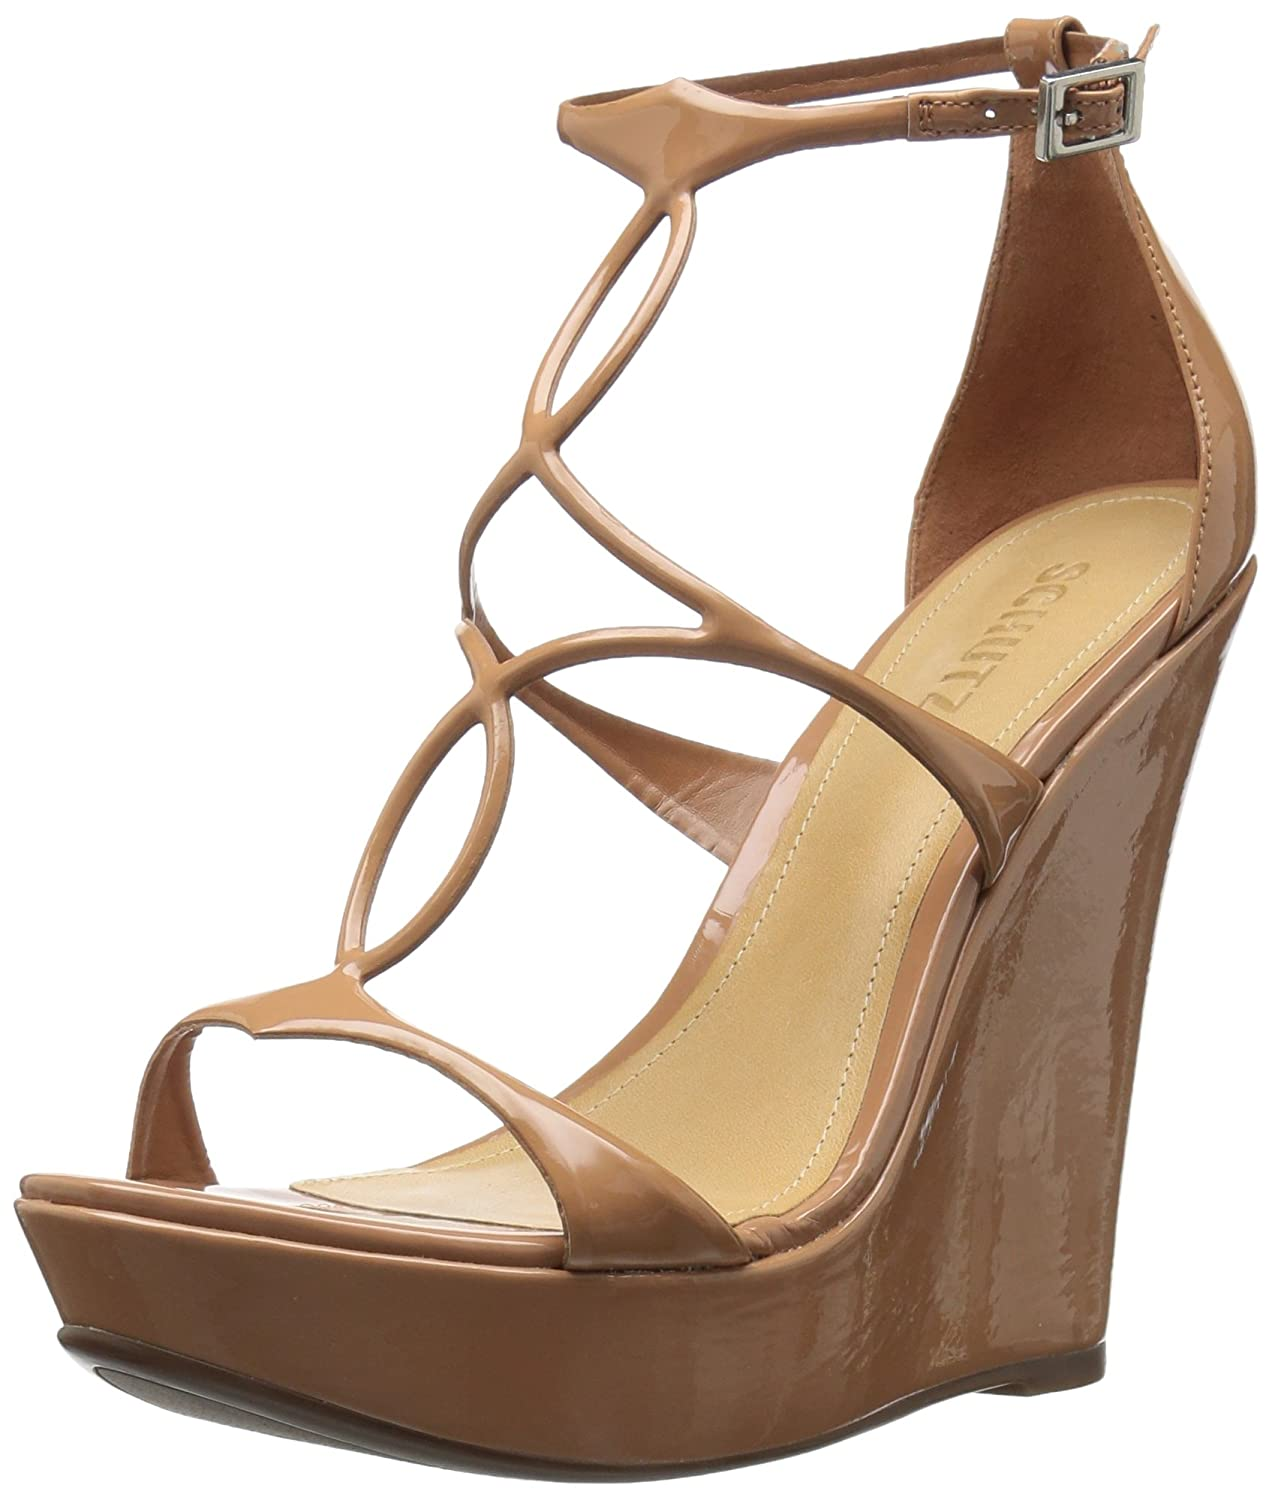 SCHUTZ Women's Sevil Wedge Sandal B0721876M7 9 M US|Toasted Nut